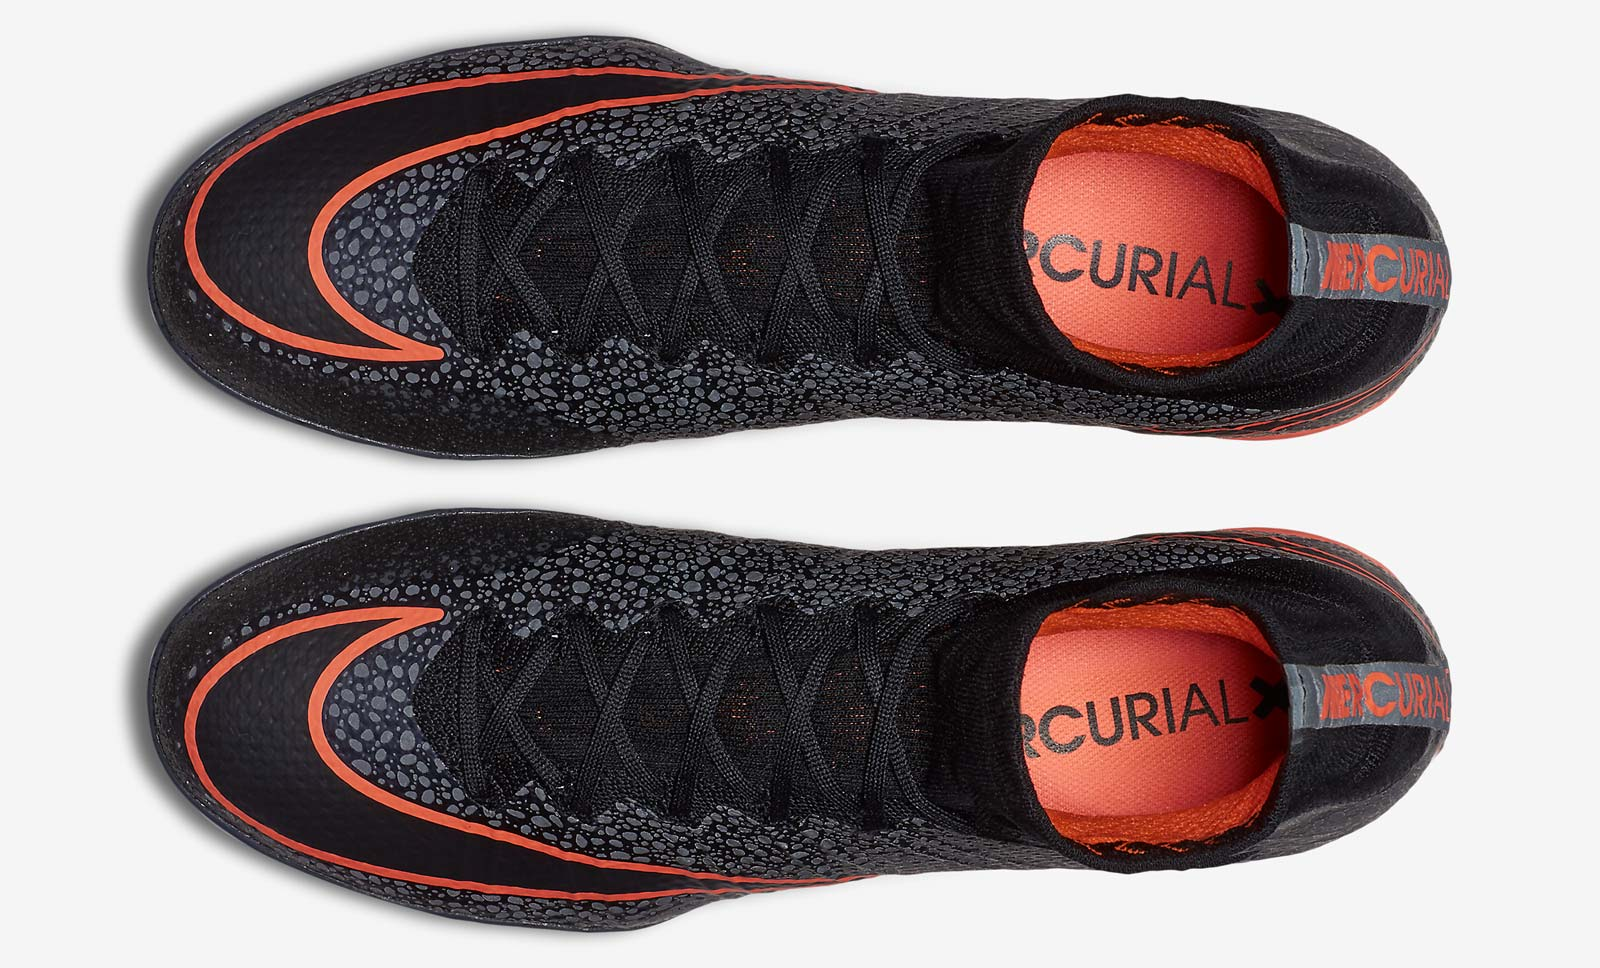 6ec5058af27f Cheap Nike Mercurial X Proximo 2016 Safari Boots Released - nike cr7 ...